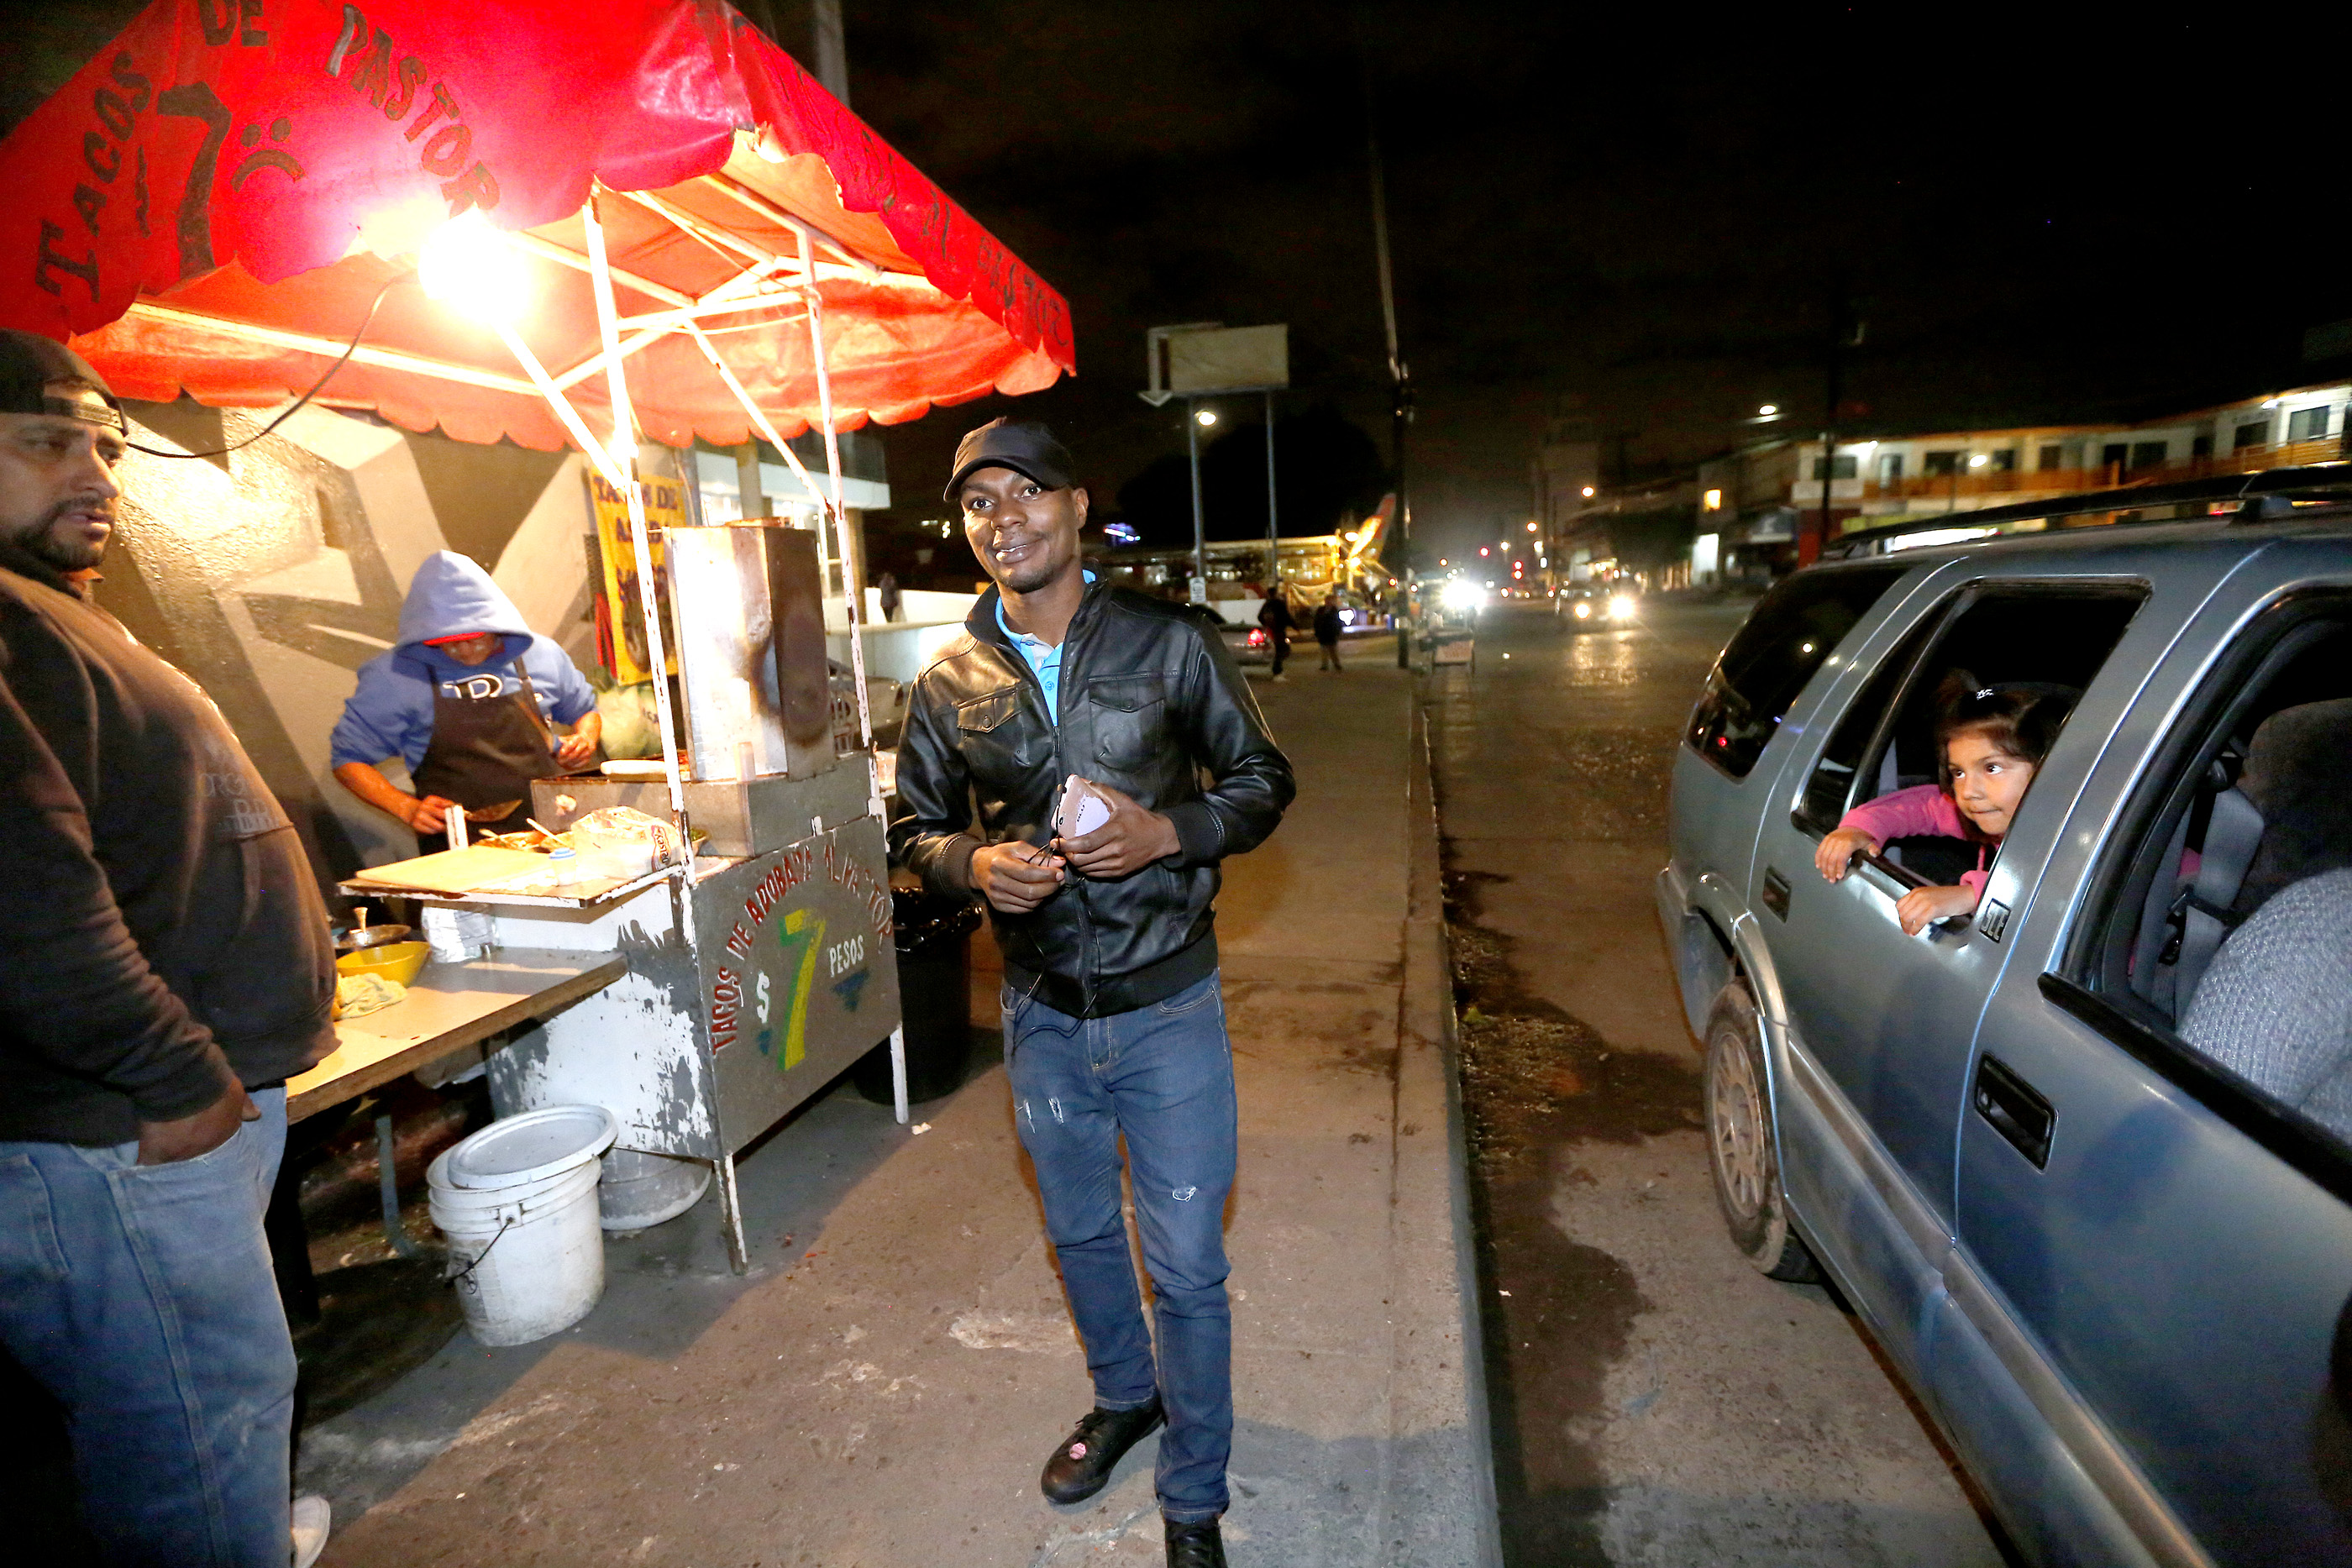 12/08/16/ TIJUANA/Haitian Lazarre John Arold with his wife is among a handful of refugees who have decided to stay in Tijuana, Mexico. Haitian Lazarre John Arold receives help at the Salvation Army in Tijuana. An unprecedented arrival of Haitians and others seeking entry into the United States in recent weeks has sent Tijuanas migrant shelters scrambling to find beds, blankets, food and other necessities to serve this increase of people awaiting processing by U.S. authorities. (Photo Aurelia Ventura/ La Opinion)